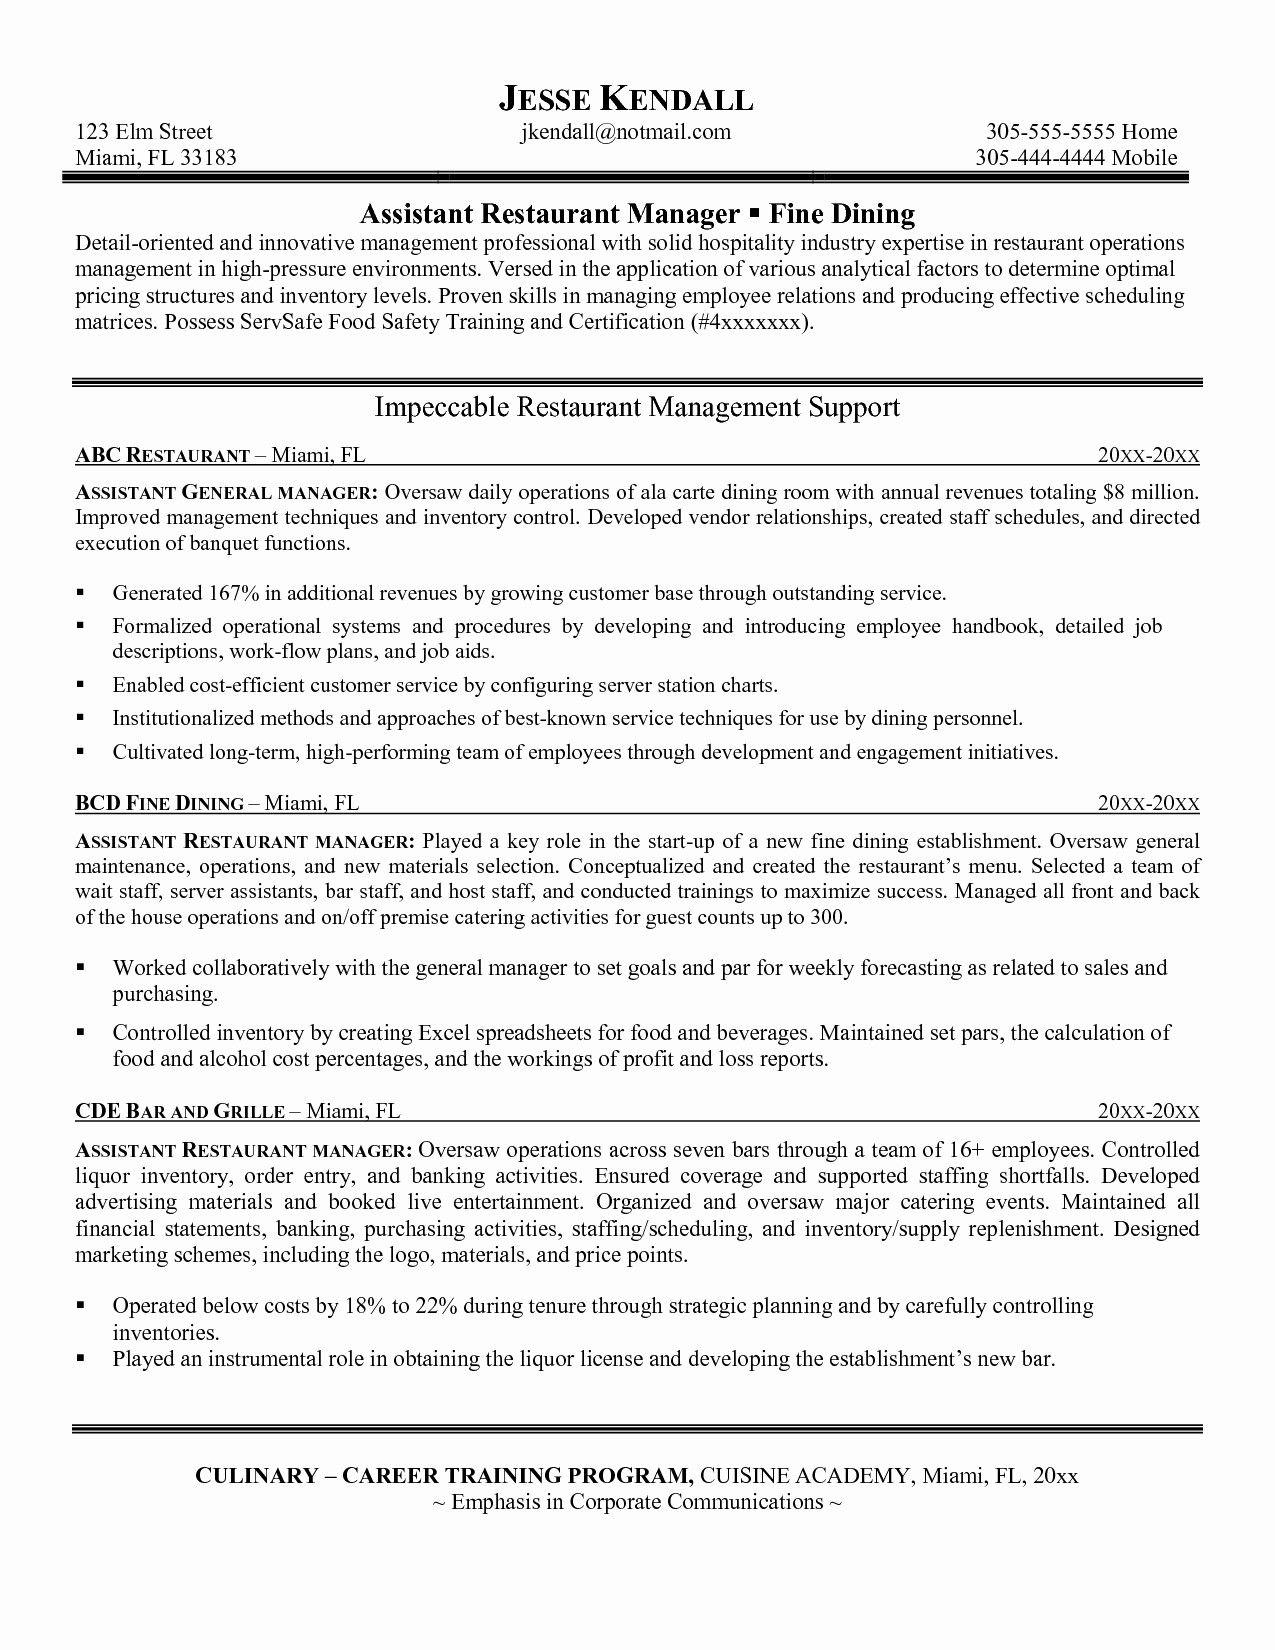 Warehouse Manager Cover Letter Template - Manager Resume Manufacturing Operations Lean Supervisor Project Pdf